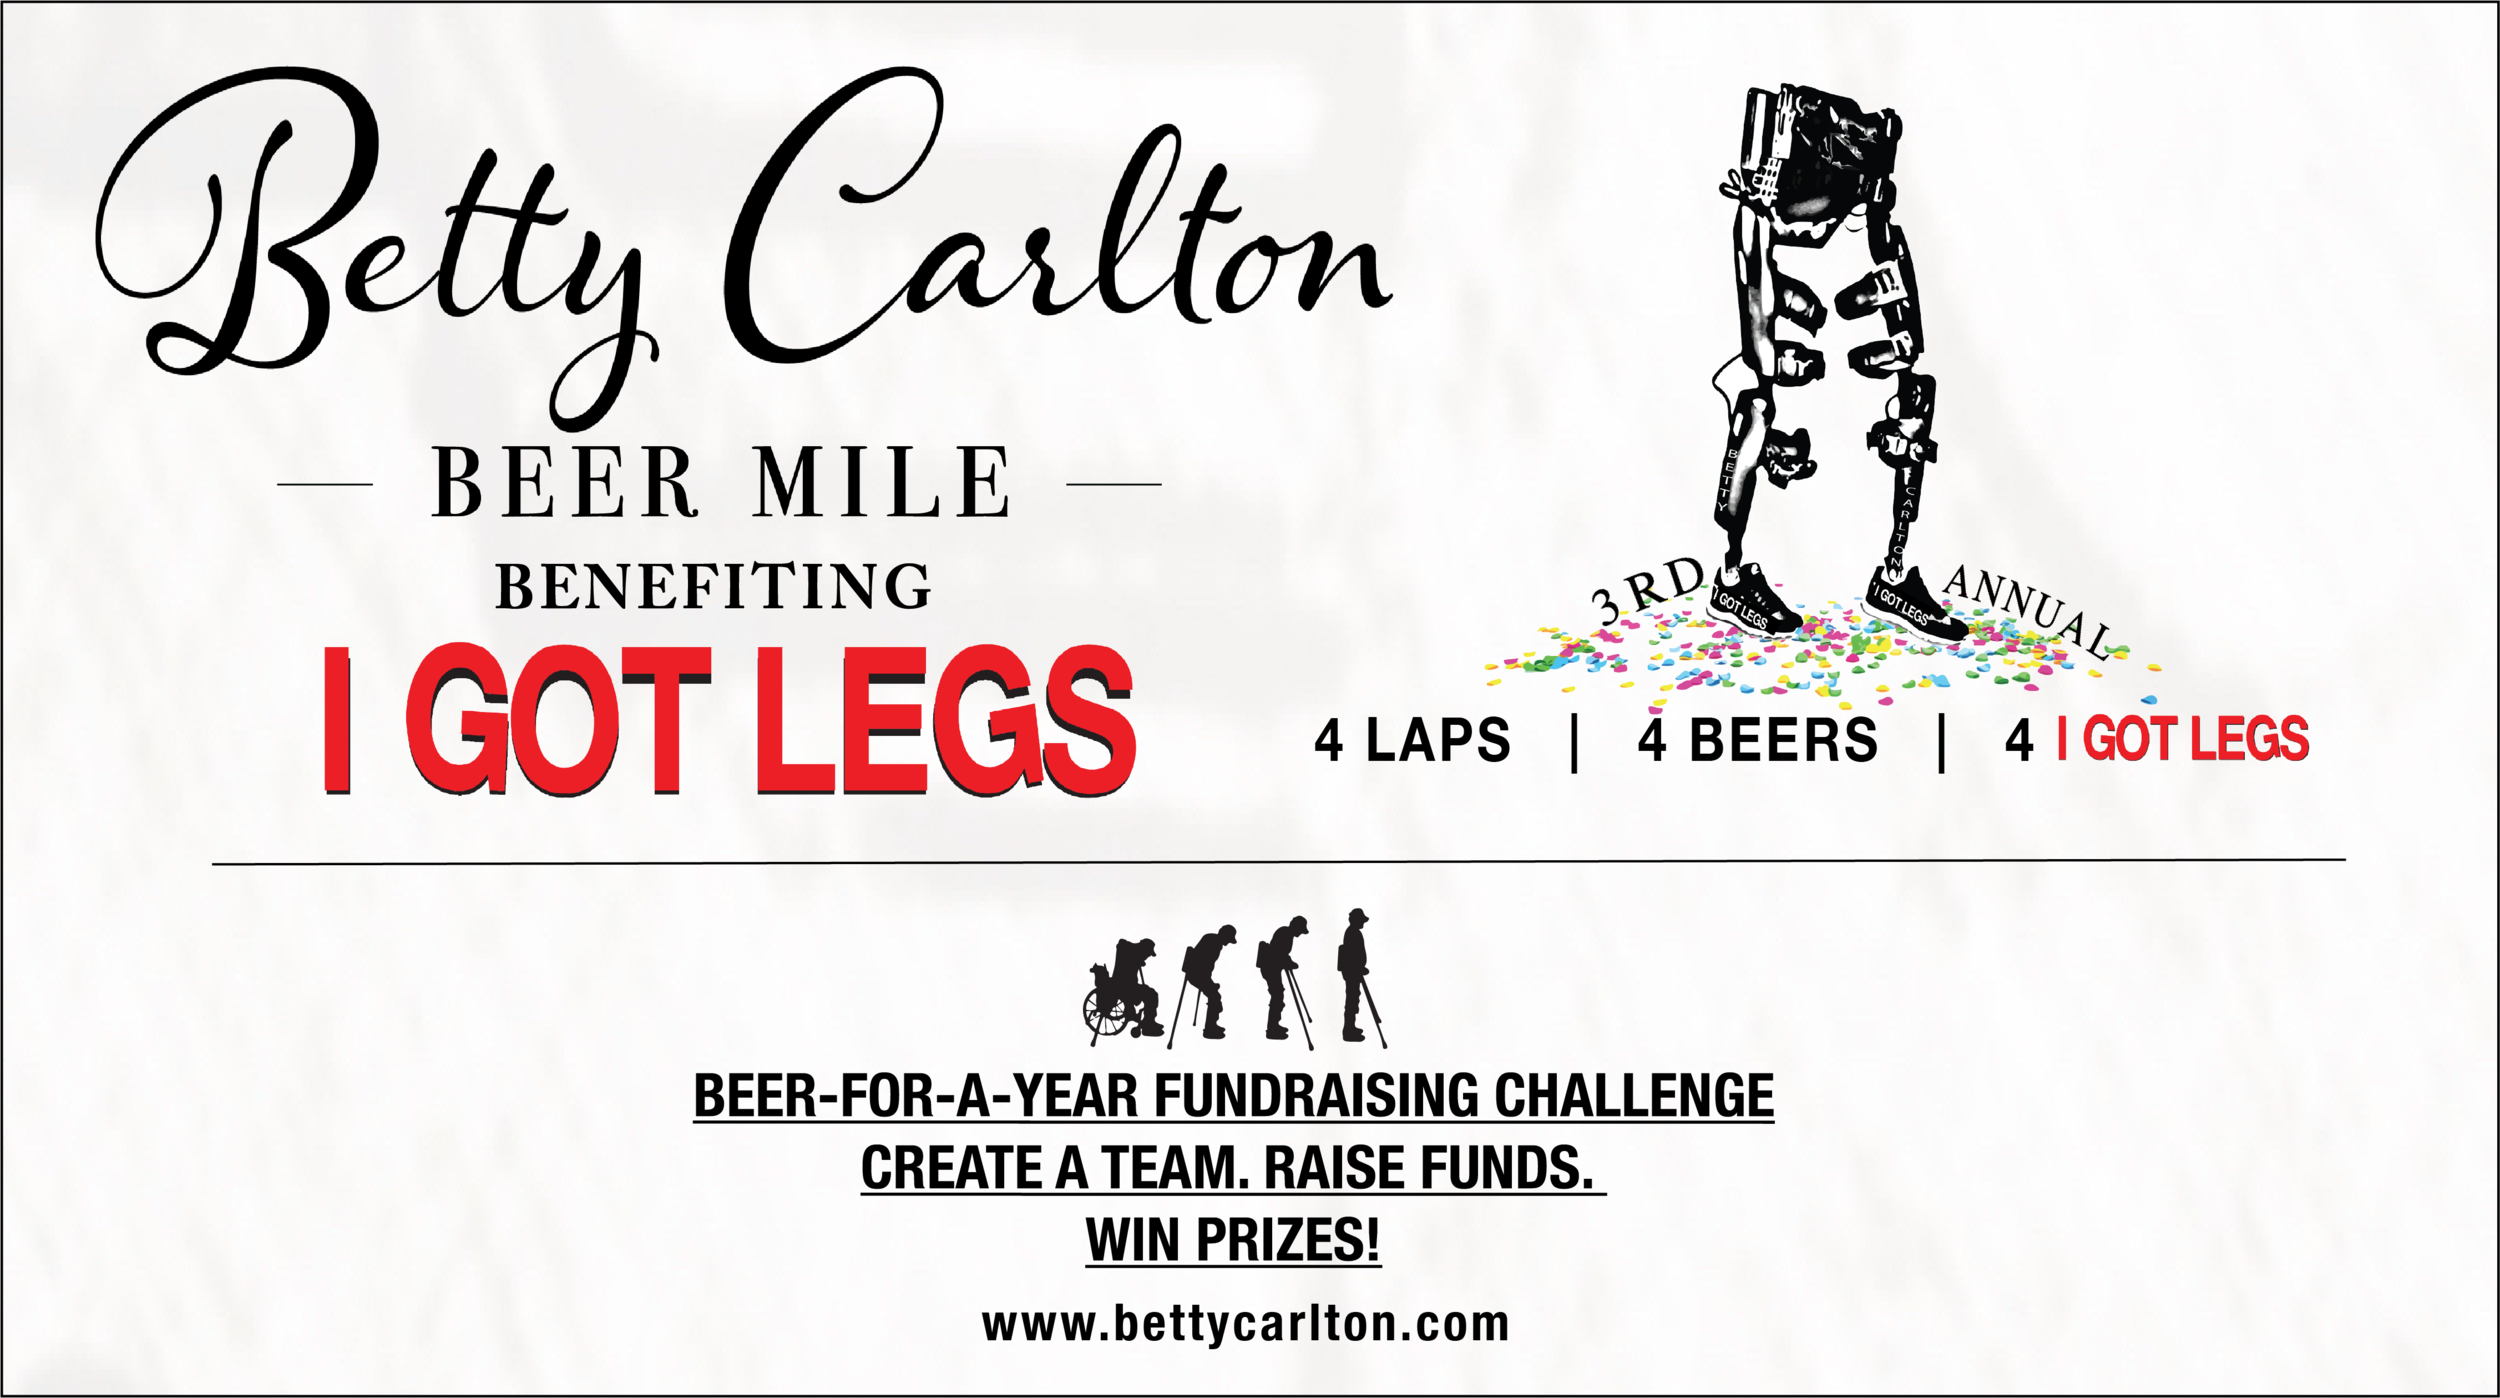 Join the challenge as either a:Solo Beer Miler, 2-Person or 4-Person Relay Team or Spectator! - RAISE FUNDS. WIN PRIZES! — Proceeds benefit I GOT LEGS mission to ReEnable people with physical challenges!